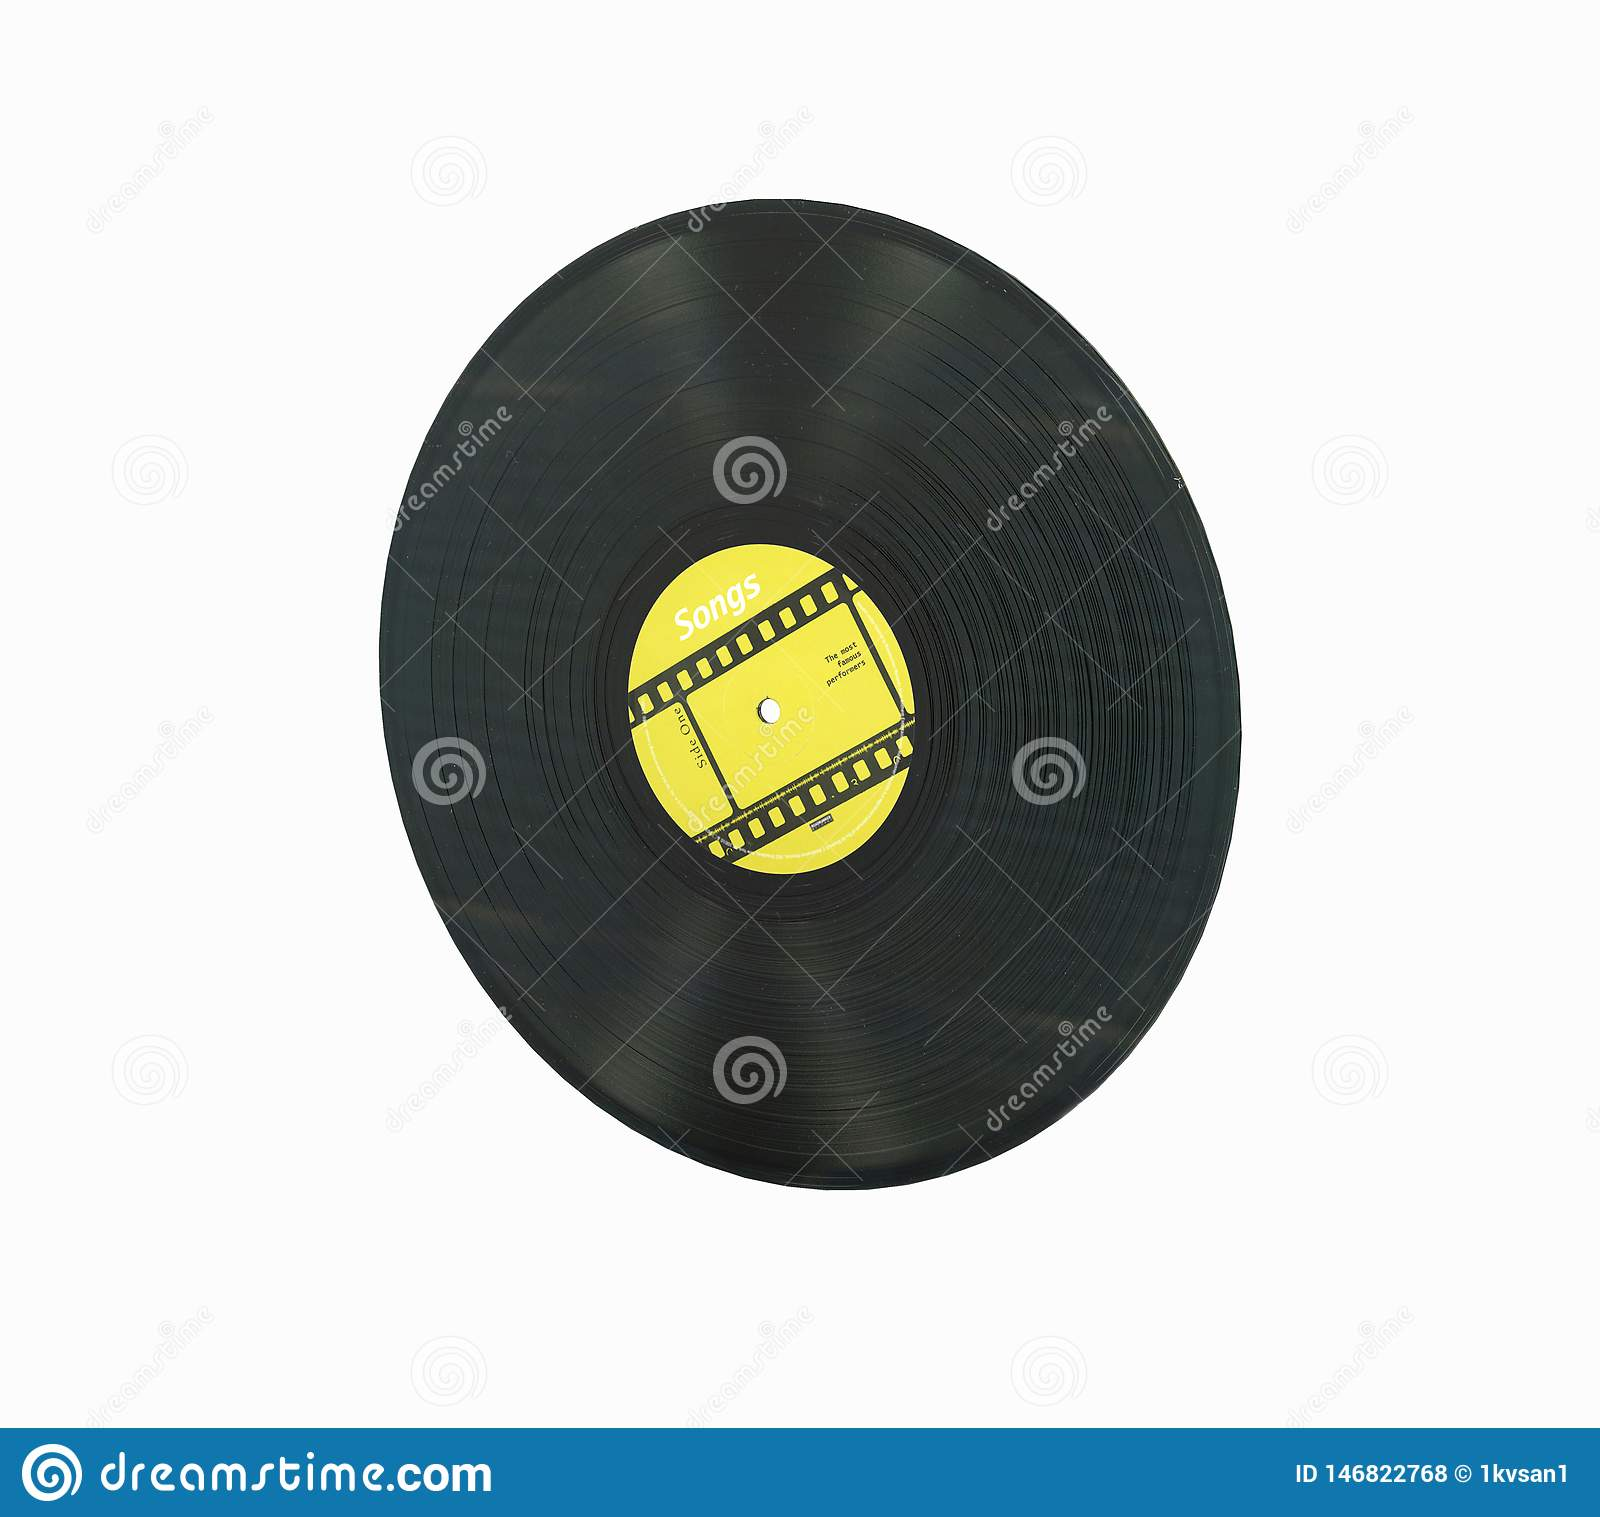 Vinyl record retro sound without shadow on white background 3d